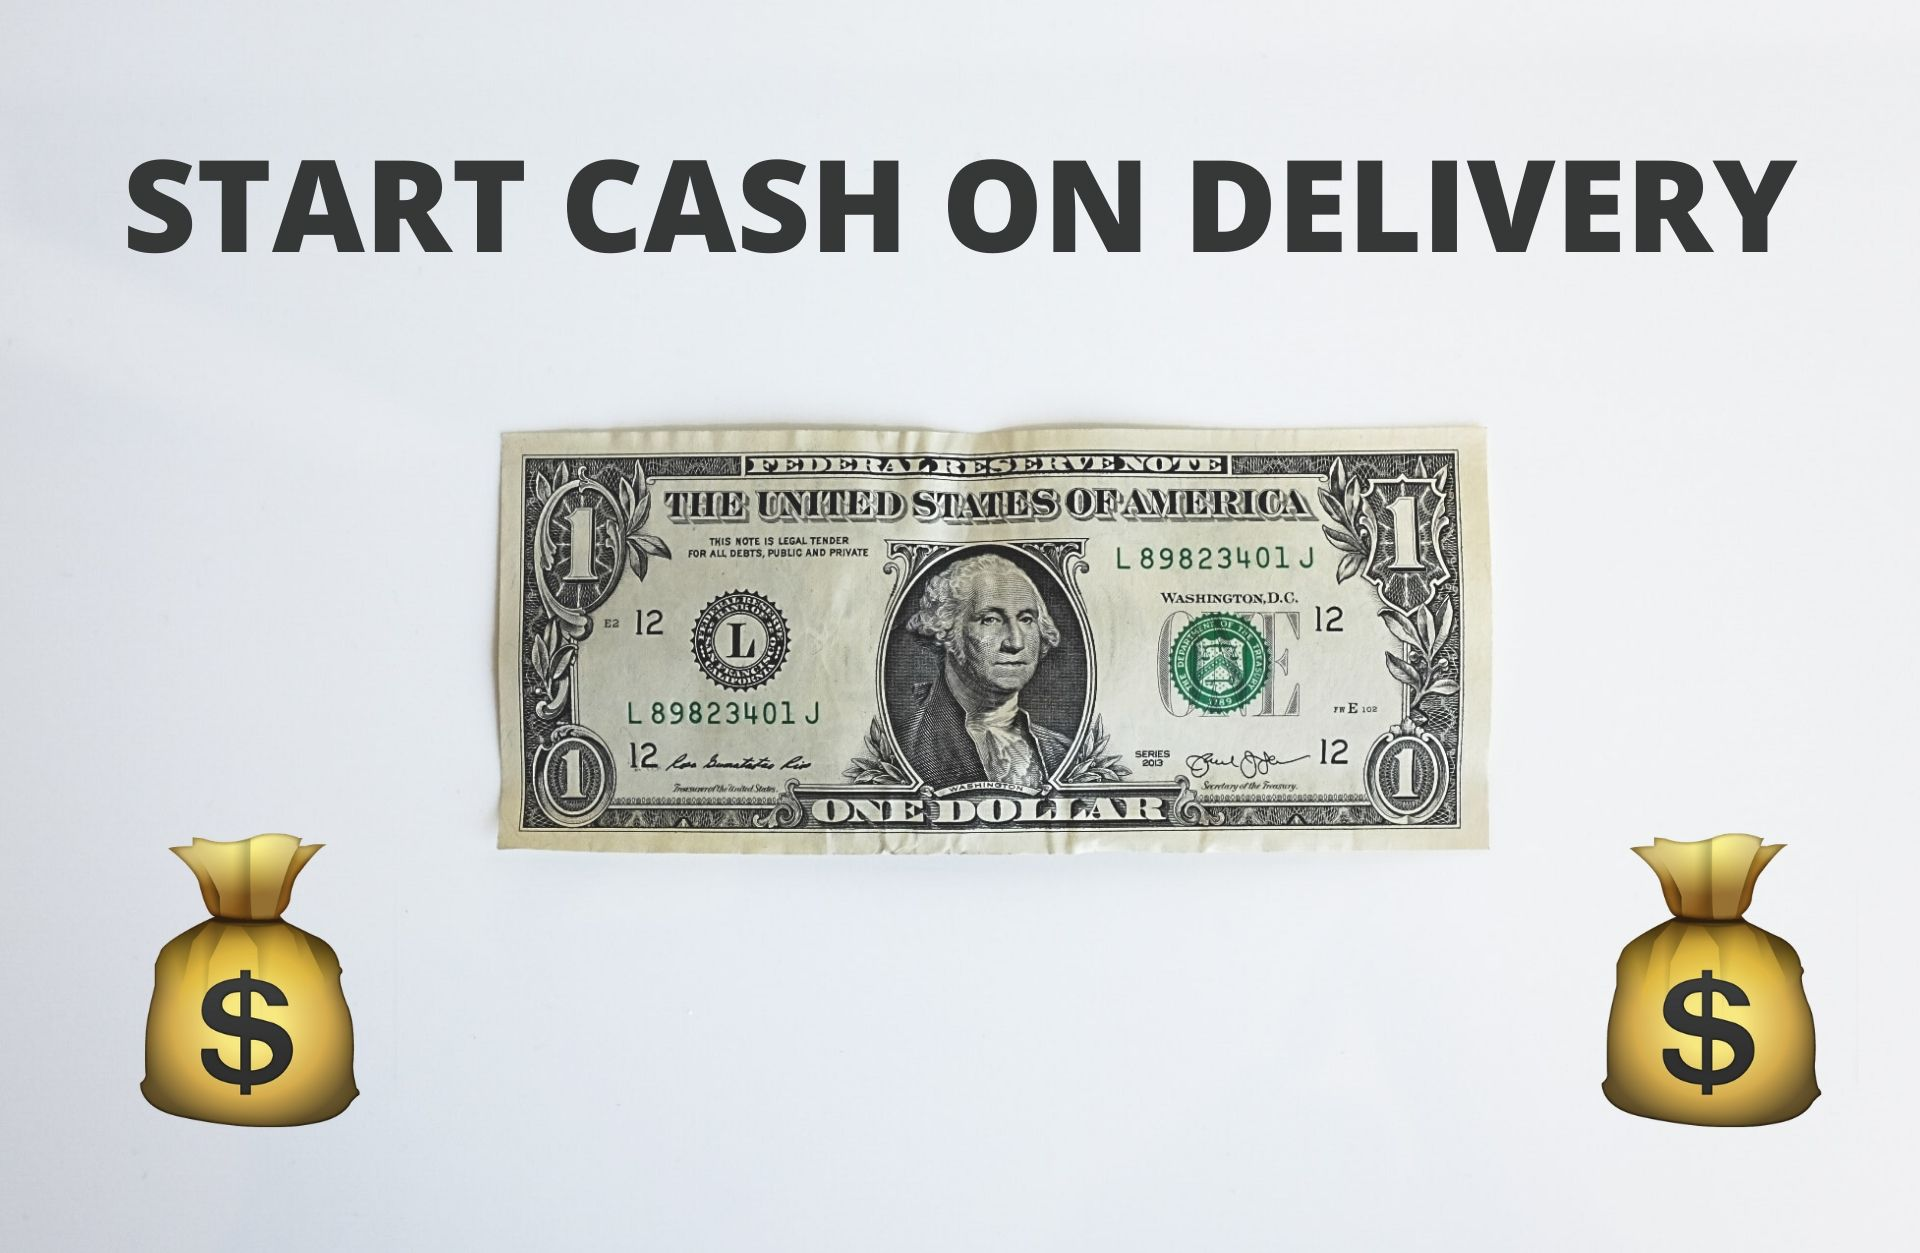 start cash on delivery - eCom Record